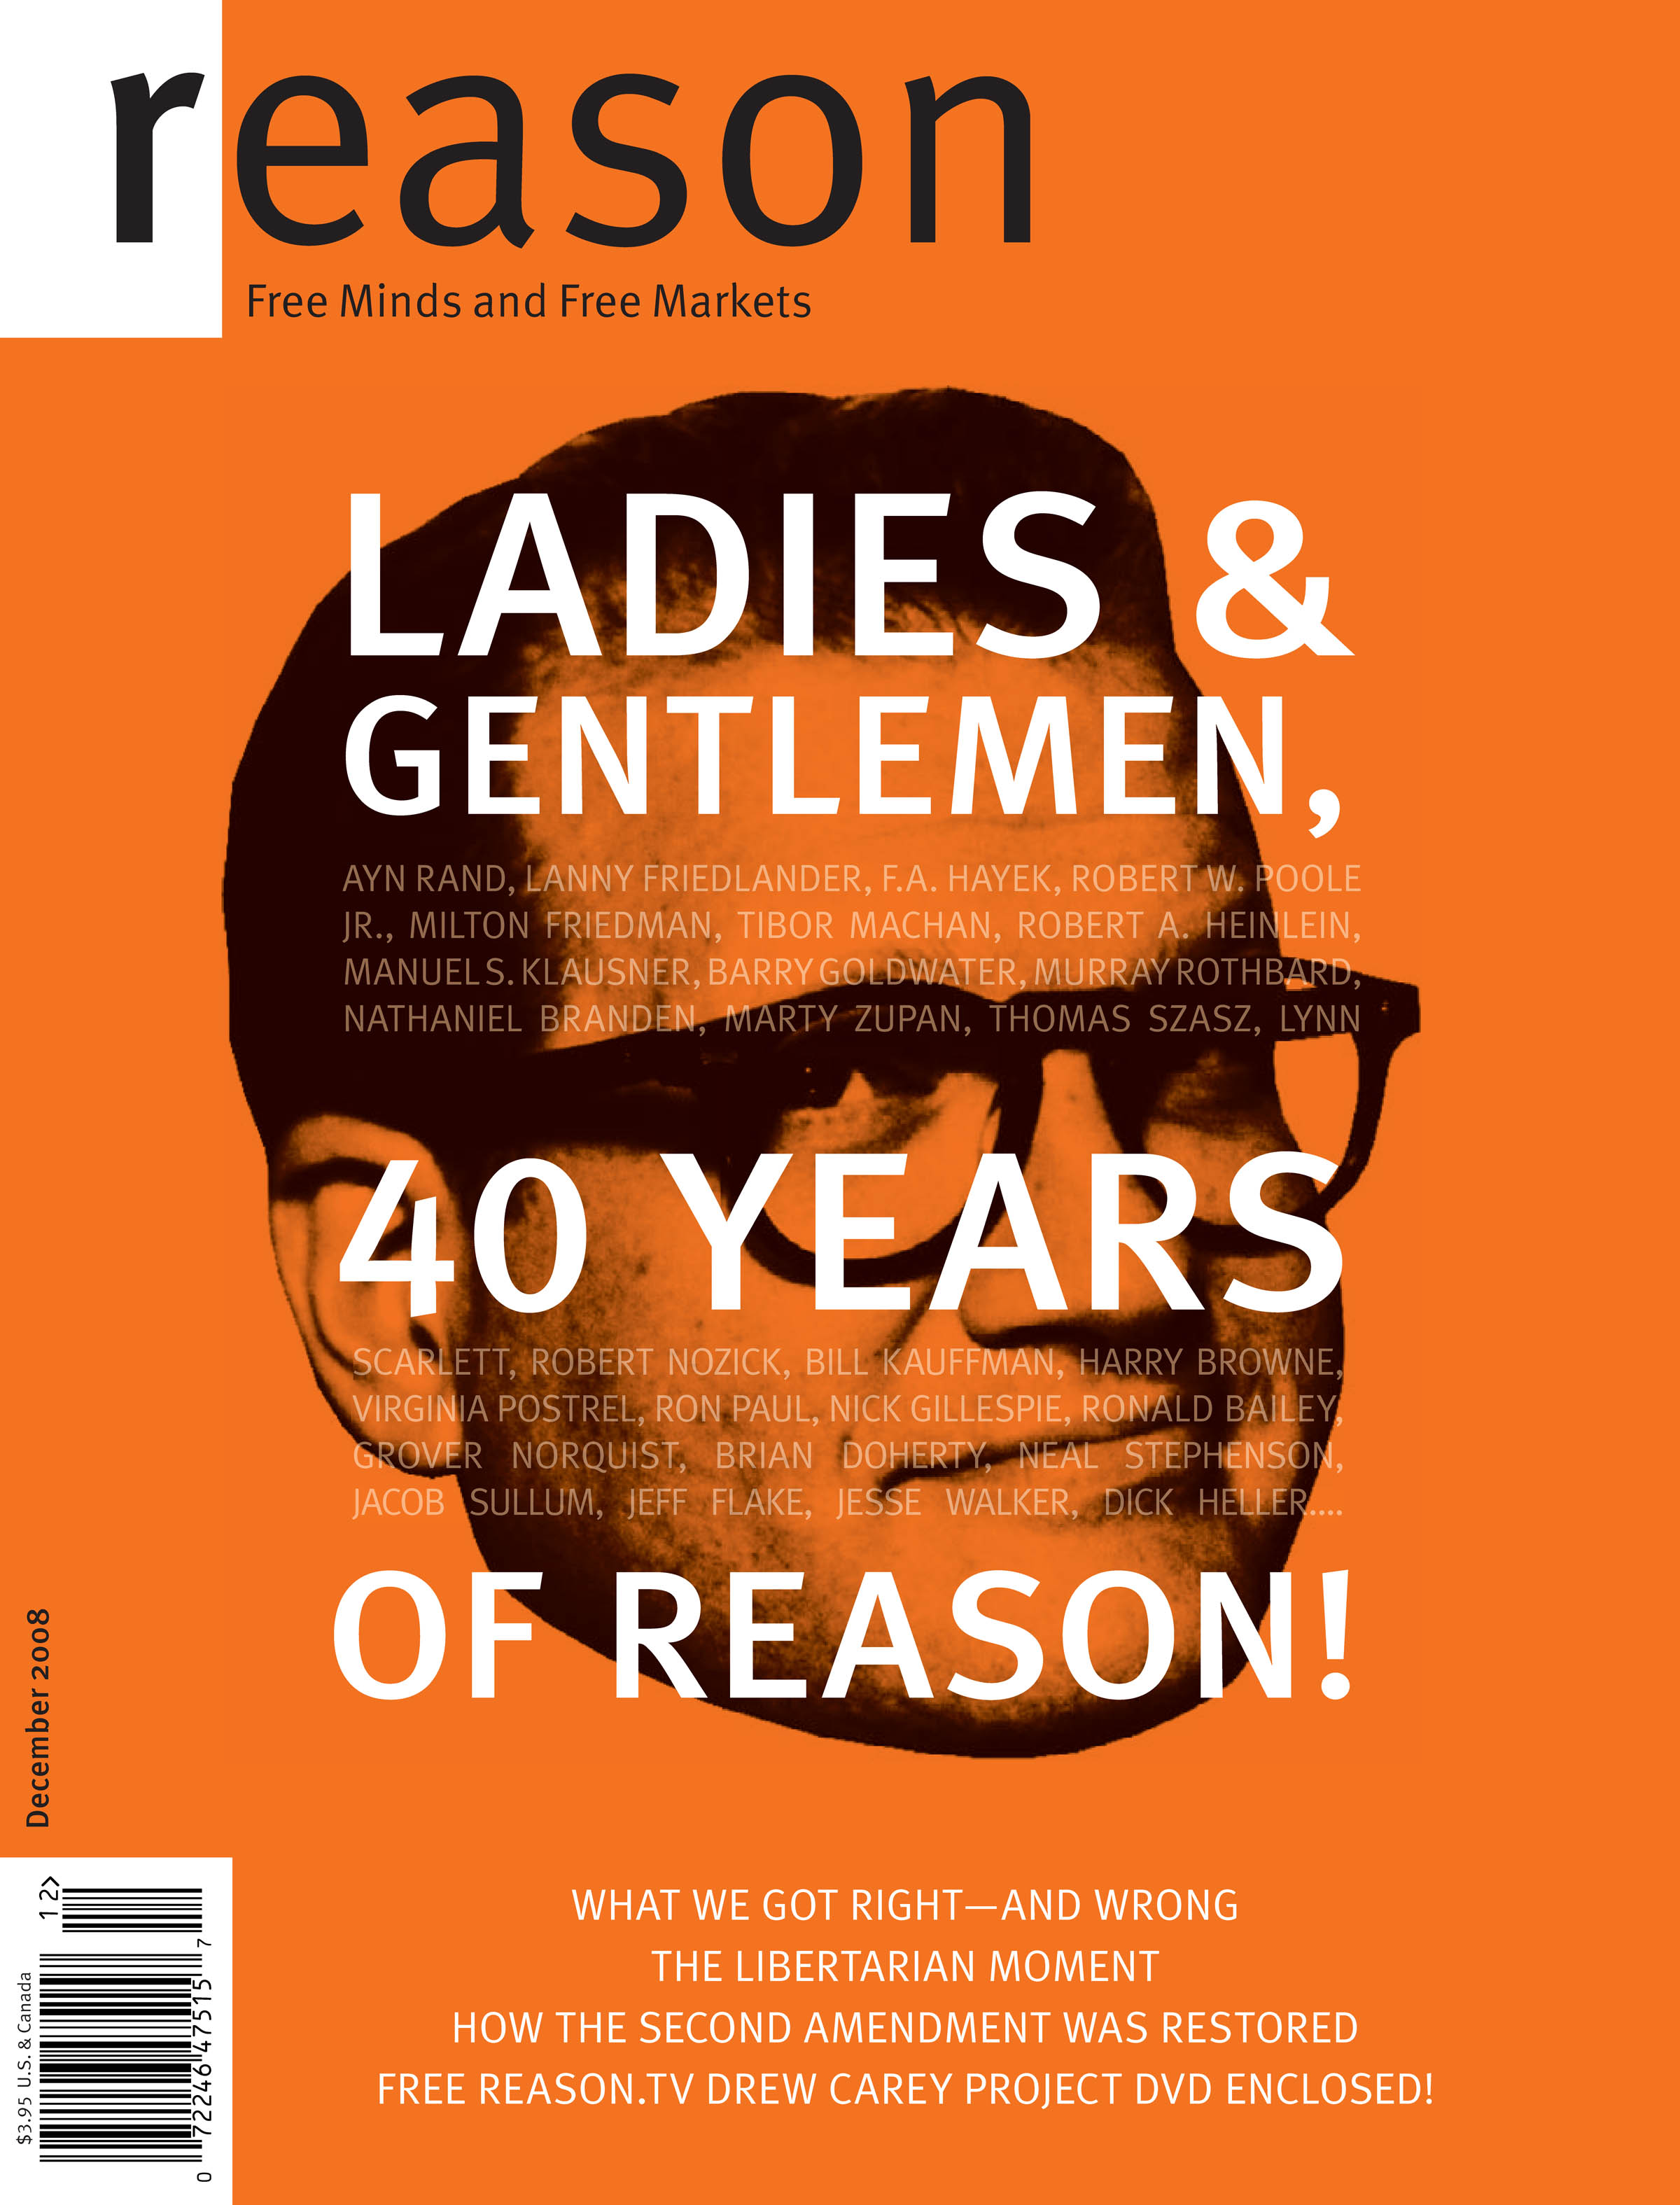 Reason Magazine, December 2008 cover image